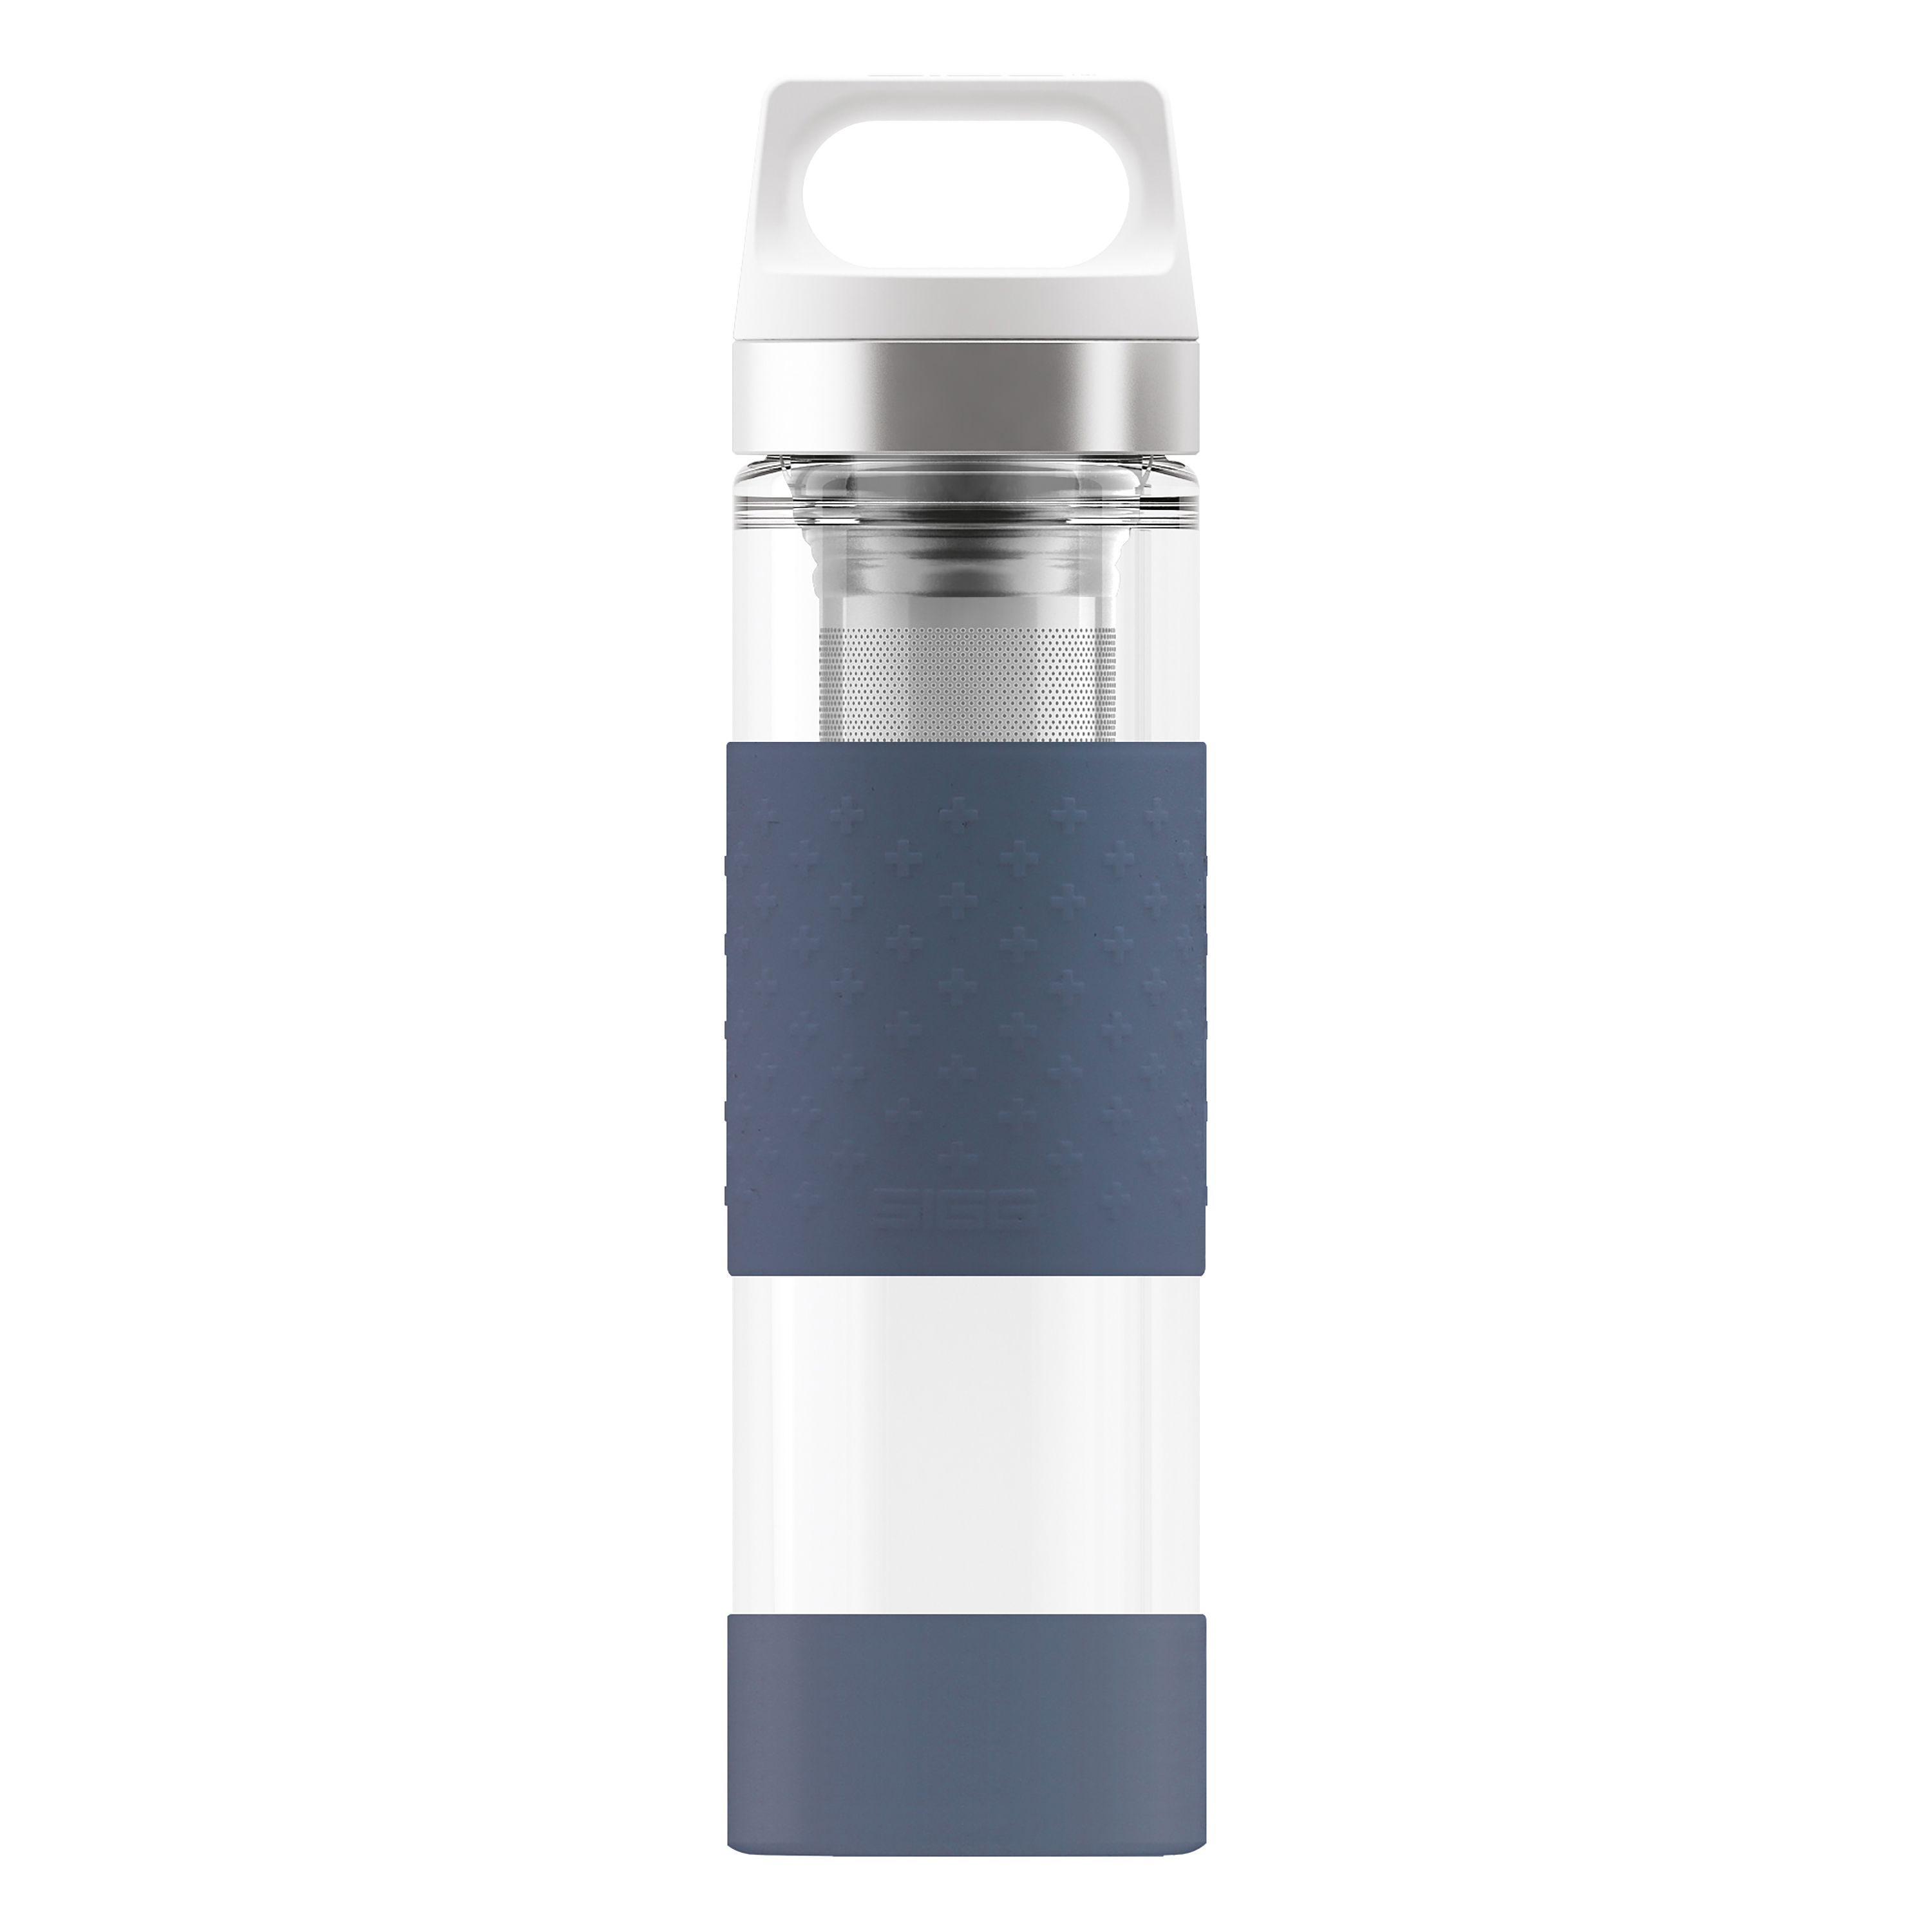 Blue Sigg Hot and Cold Brew Bottle